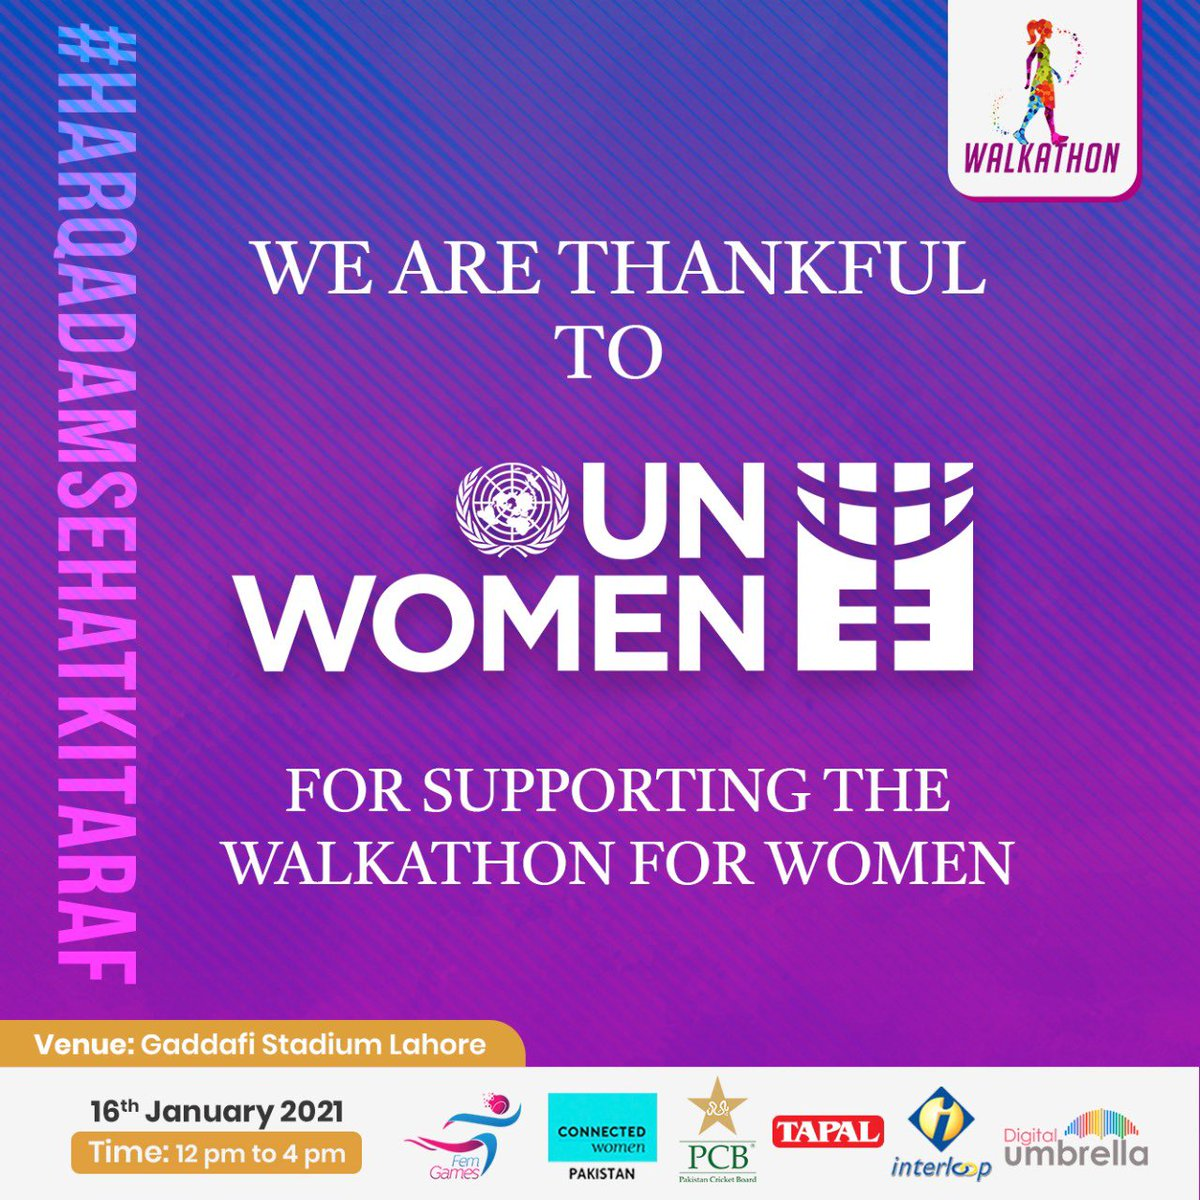 Congratulations @EbbaQ  FemGames is organizing Walkathon event to promote women's health and fitness inviting all females to come join at the event and have a chance to win exciting prizes and goodie bags!!